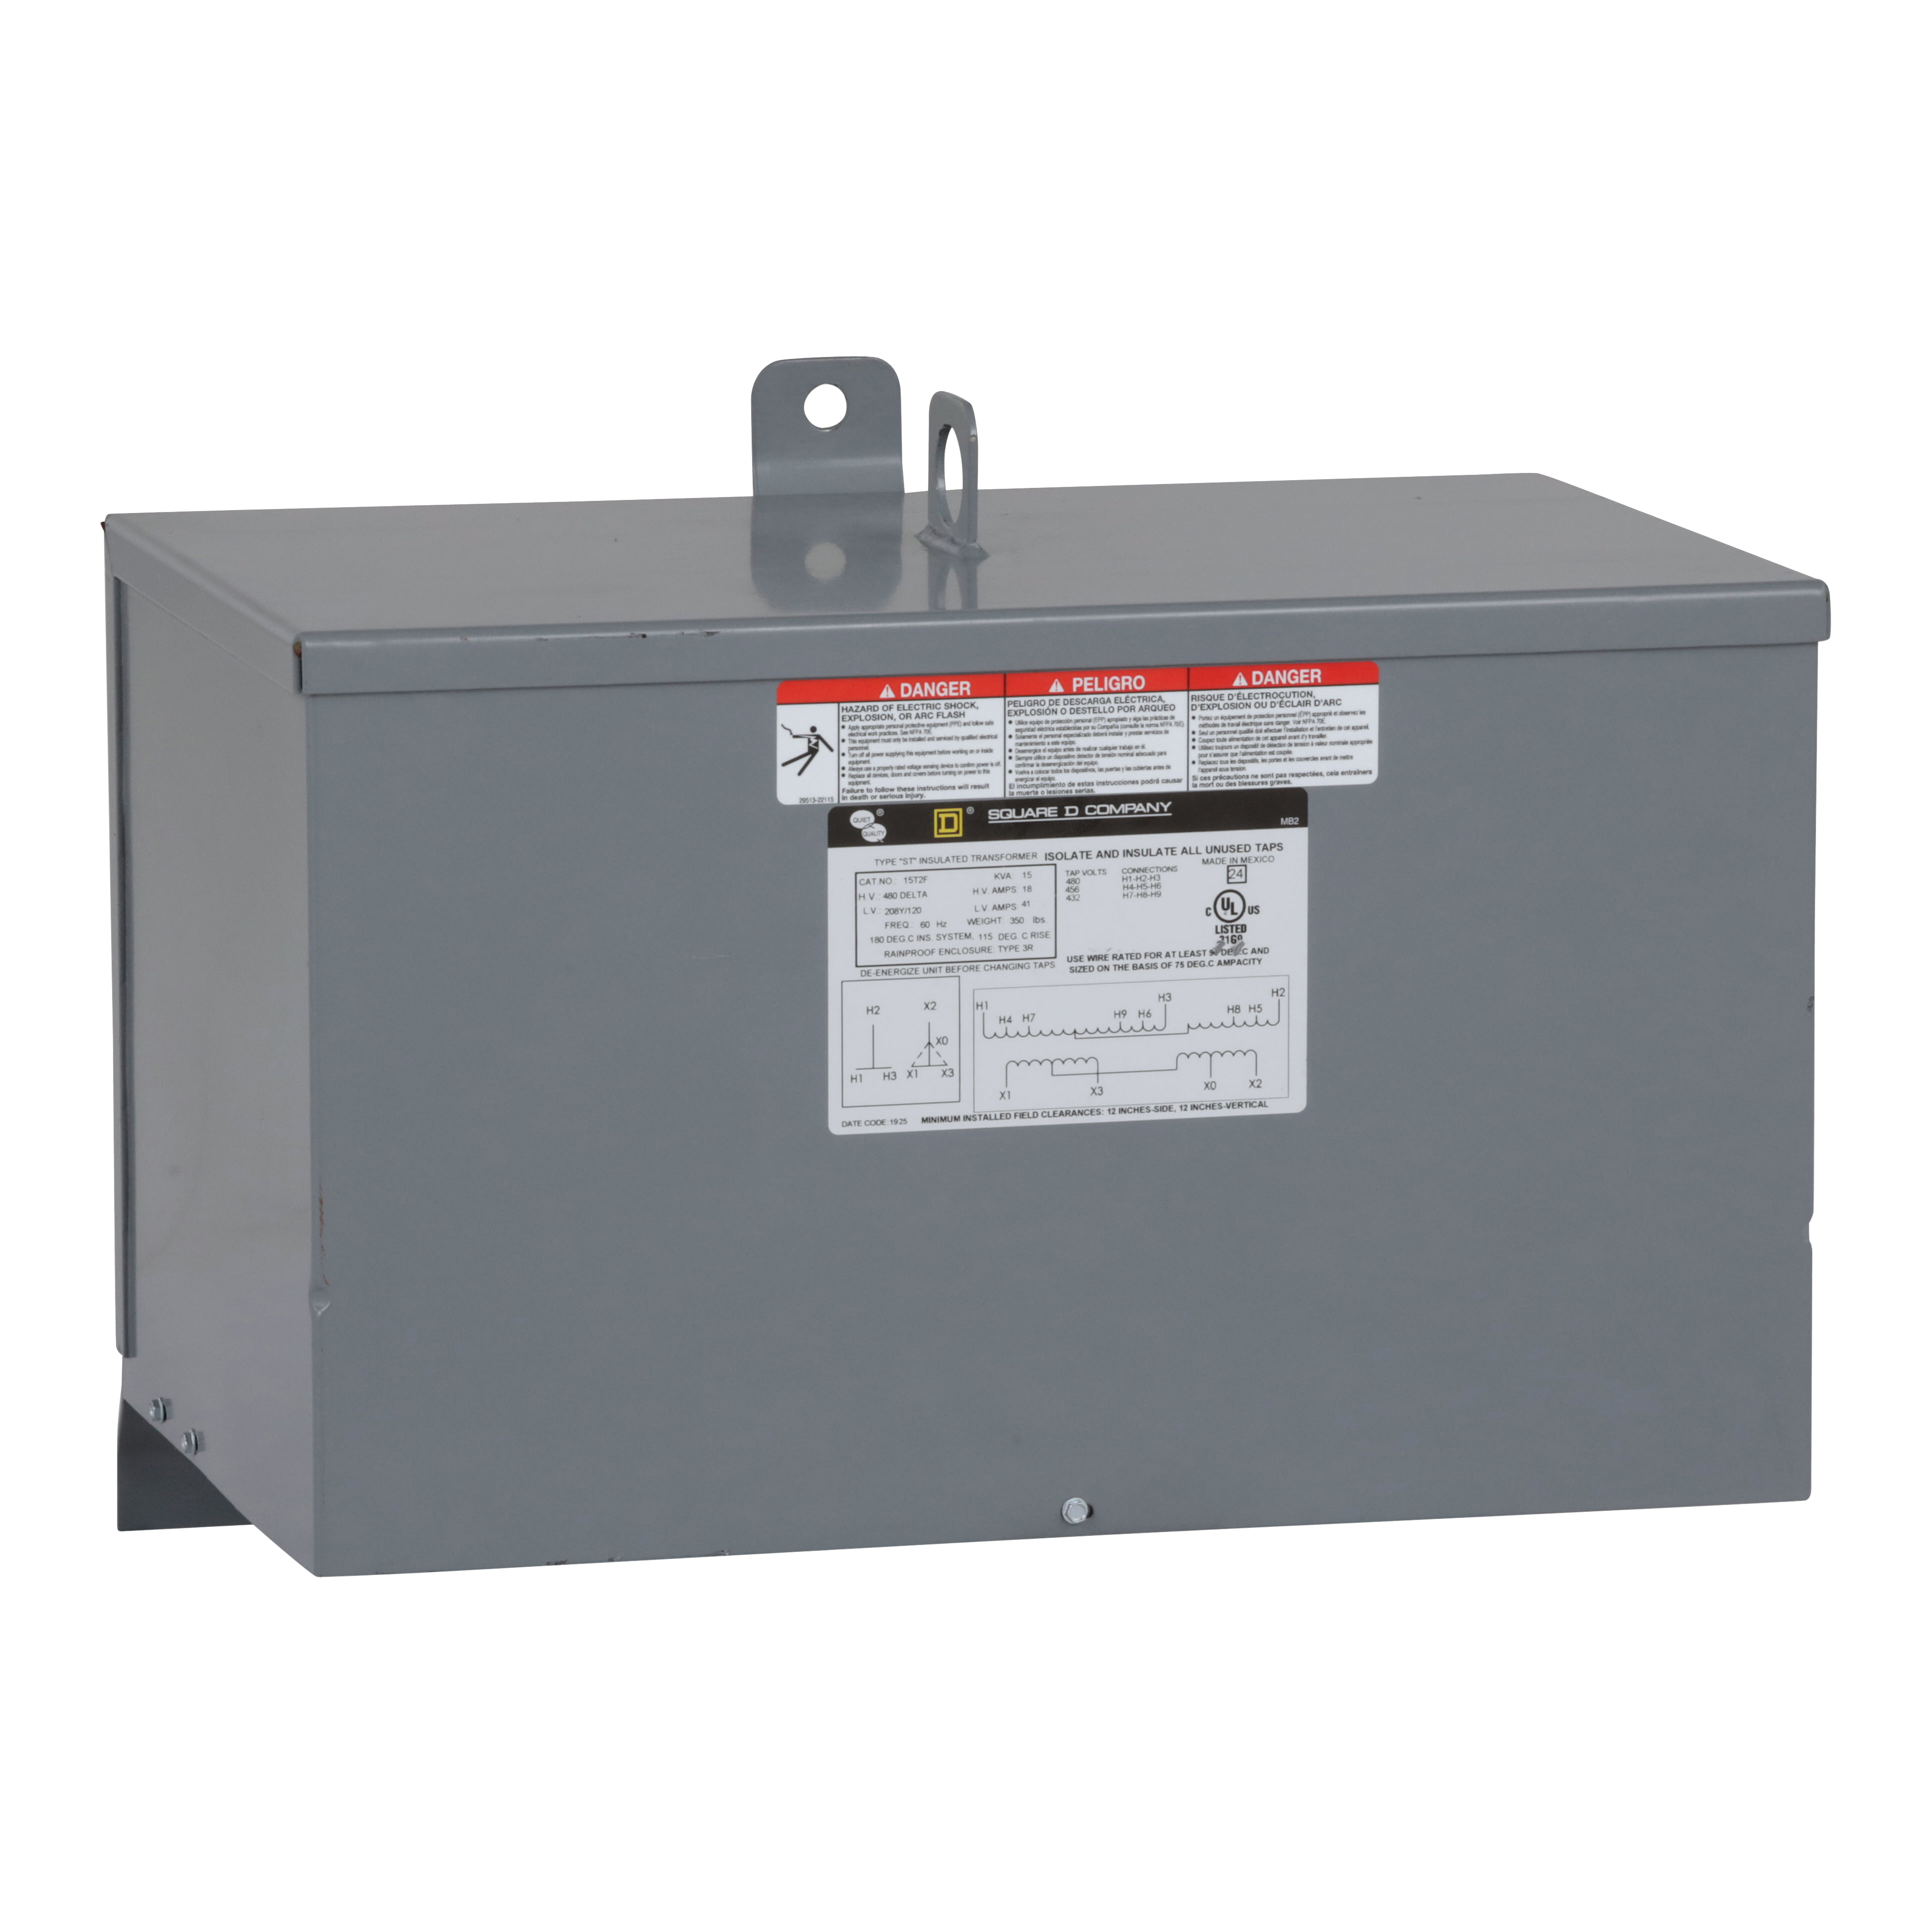 Square-D 15T2F 15 kVa 480 VAC Delta Primary 208 Star/120 VAC Secondary Dry Type General Purpose Transformer